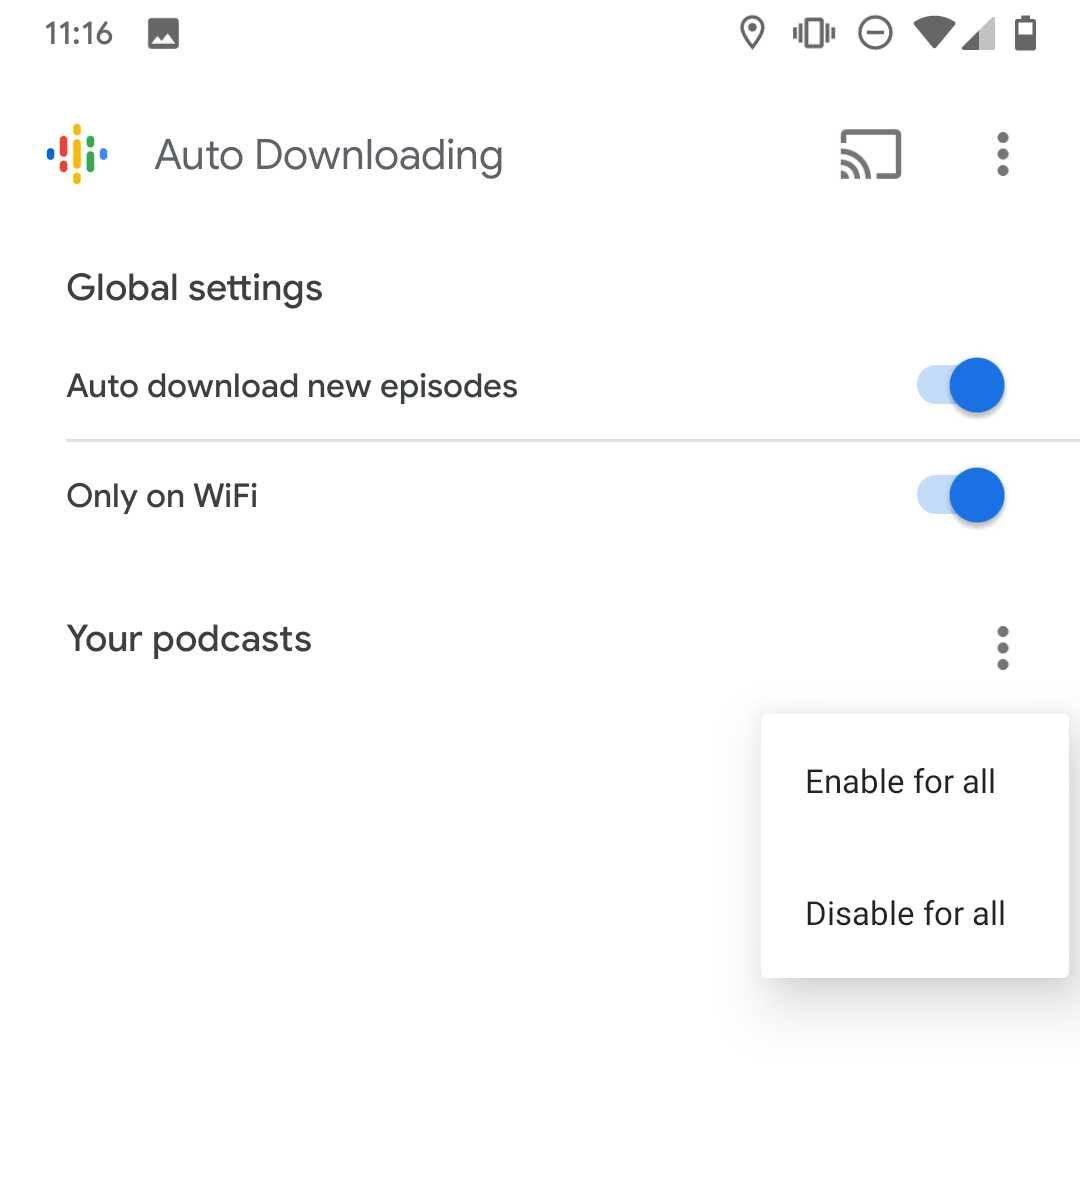 Auto Downloading' is live for some Google Podcasts users - 9to5Google